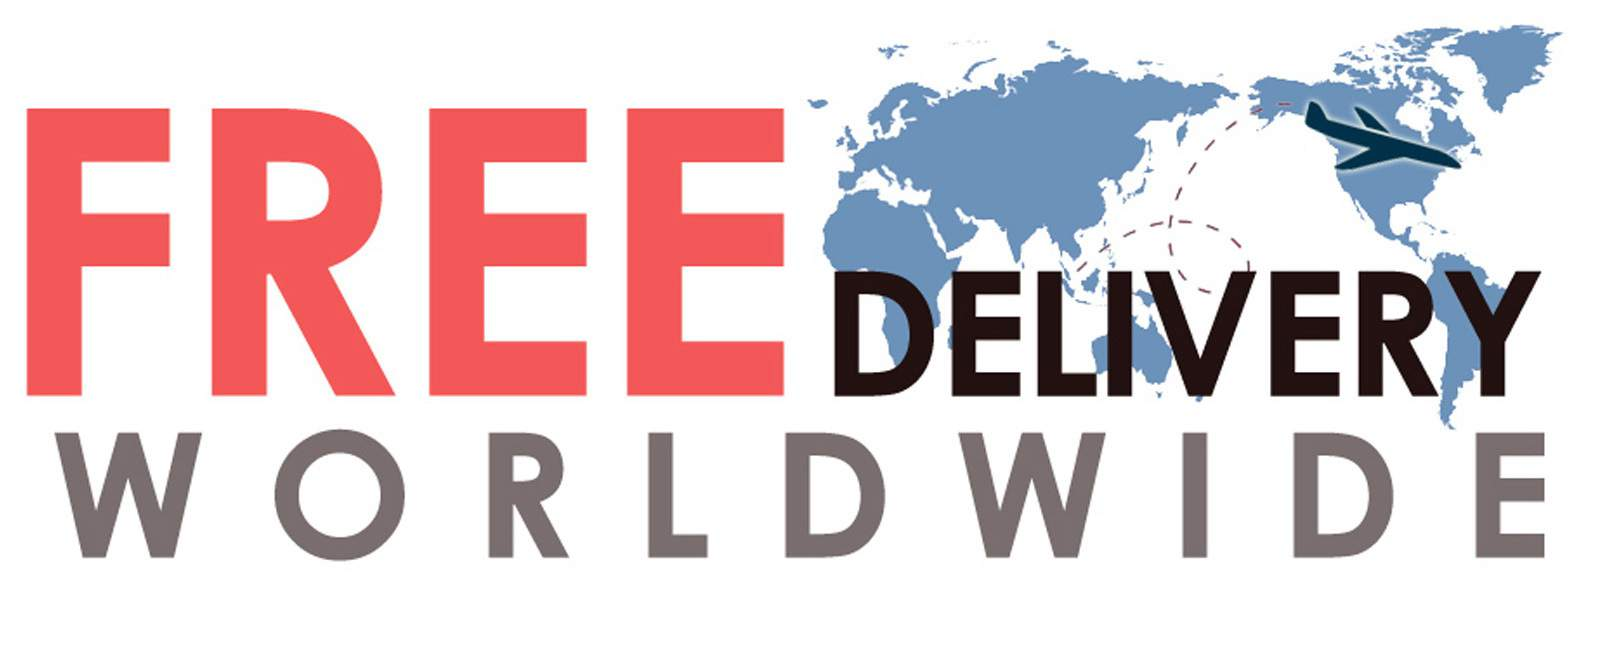 Free Worldwide  Delivery